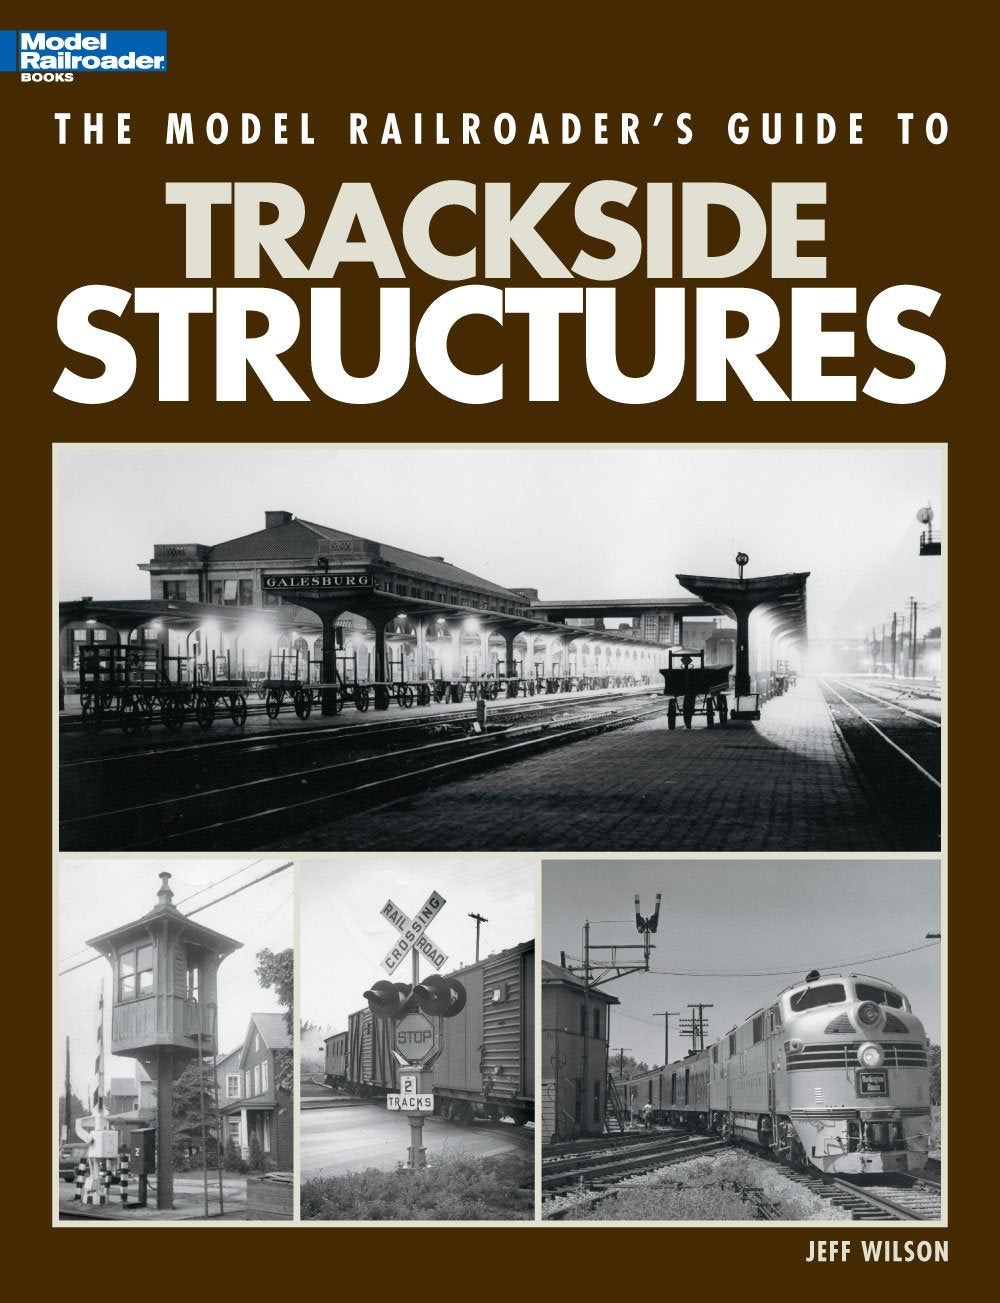 The Model Railroader's Guide to Trackside Structures #12436 Book Wilson Lots Pix